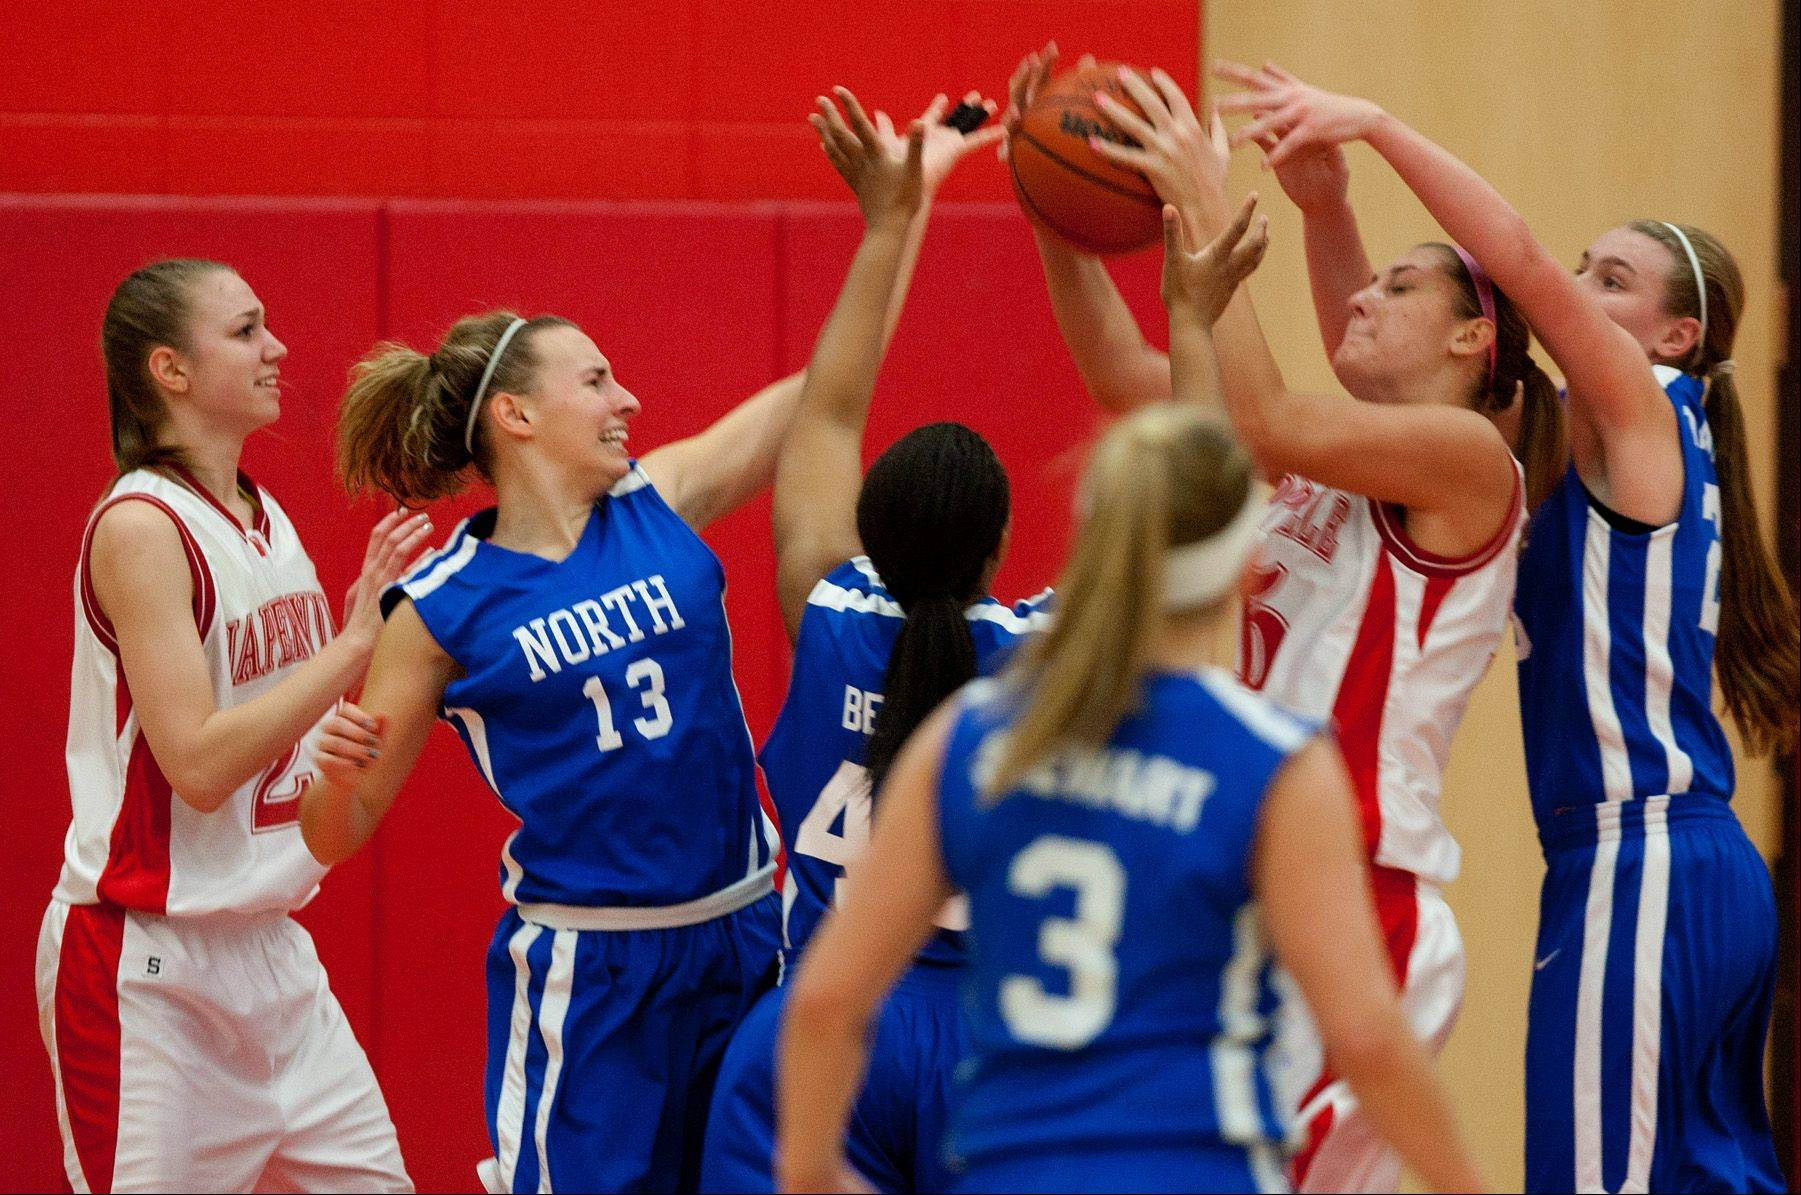 Naperville Central's Victoria Trowbridge grabs a defensive rebound over Wheaton North, during girls basketball action in Naperville.